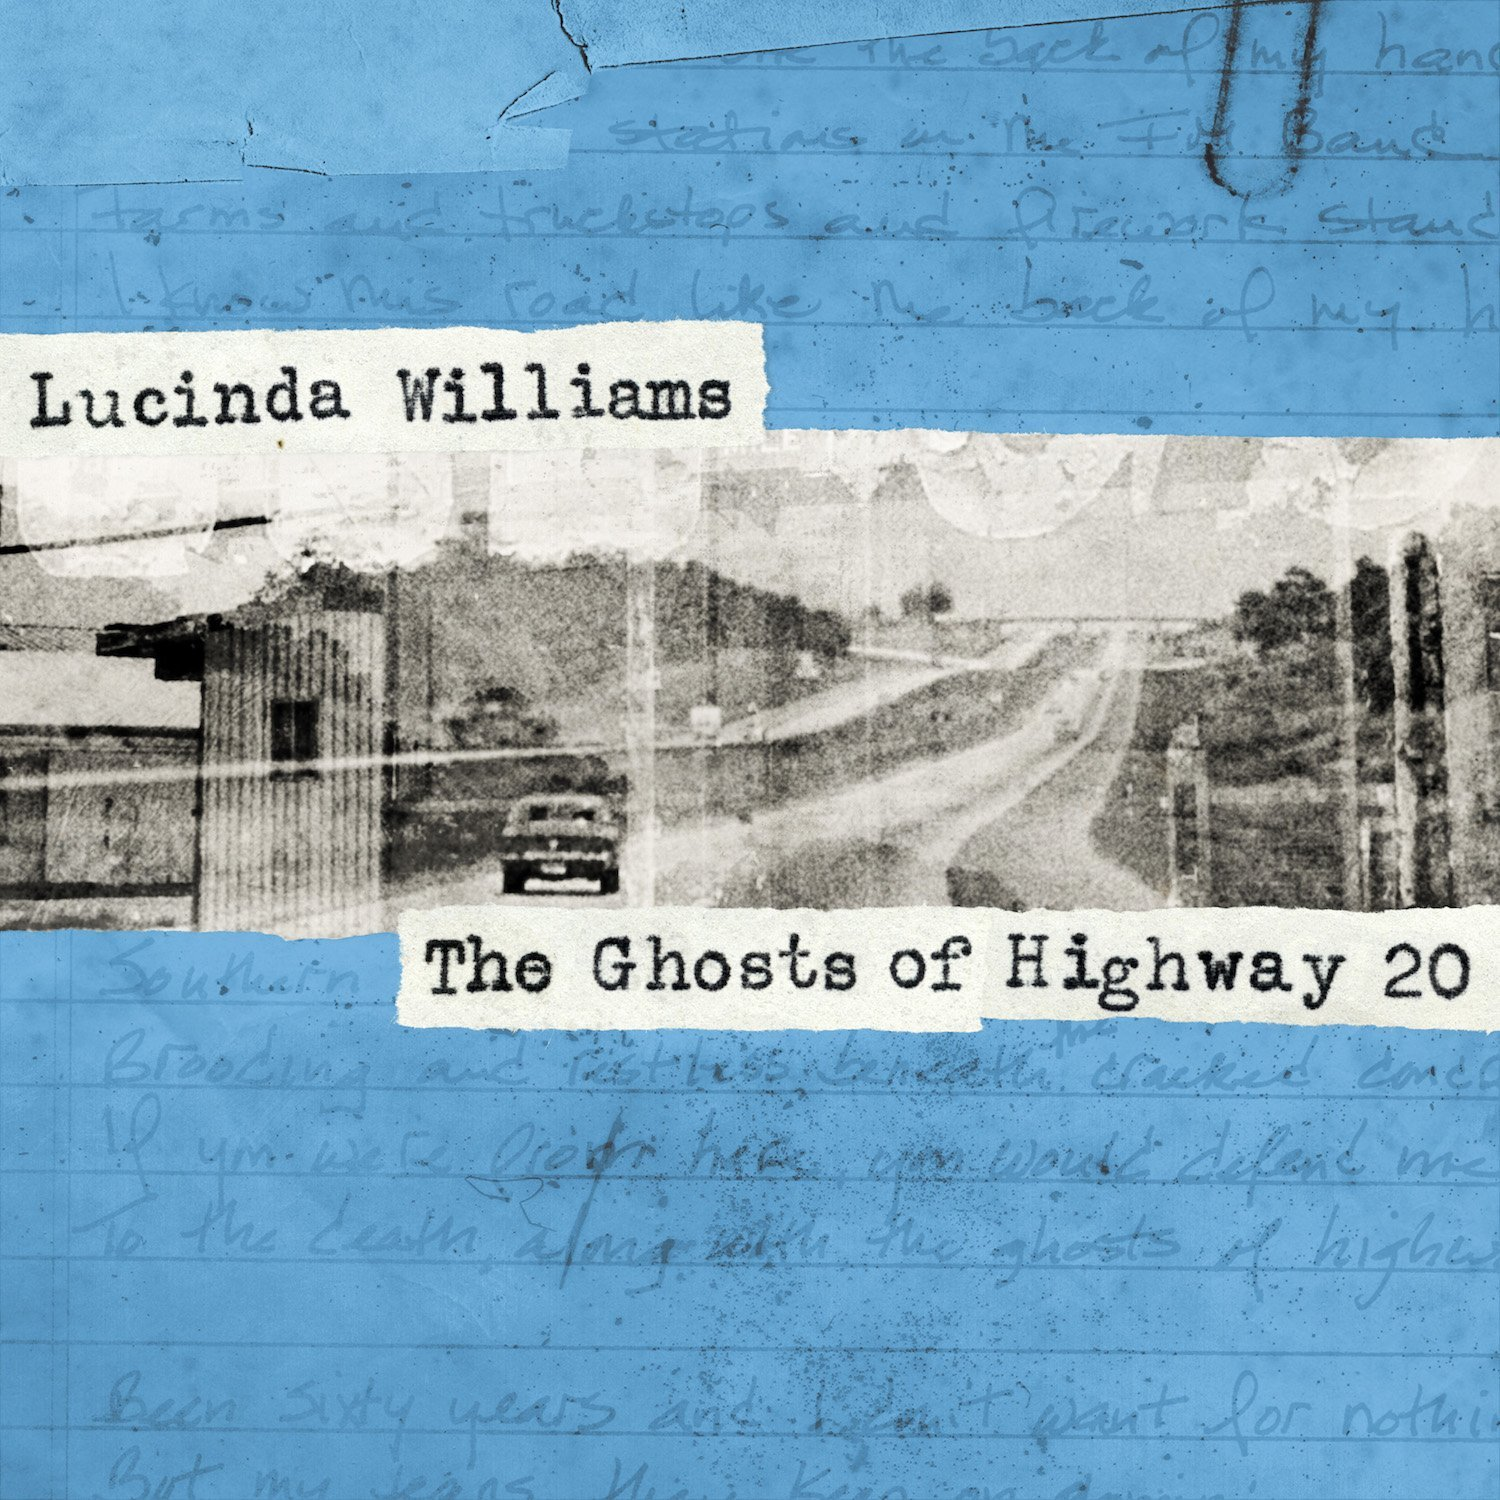 Image result for lucinda williams ghosts of highway 20